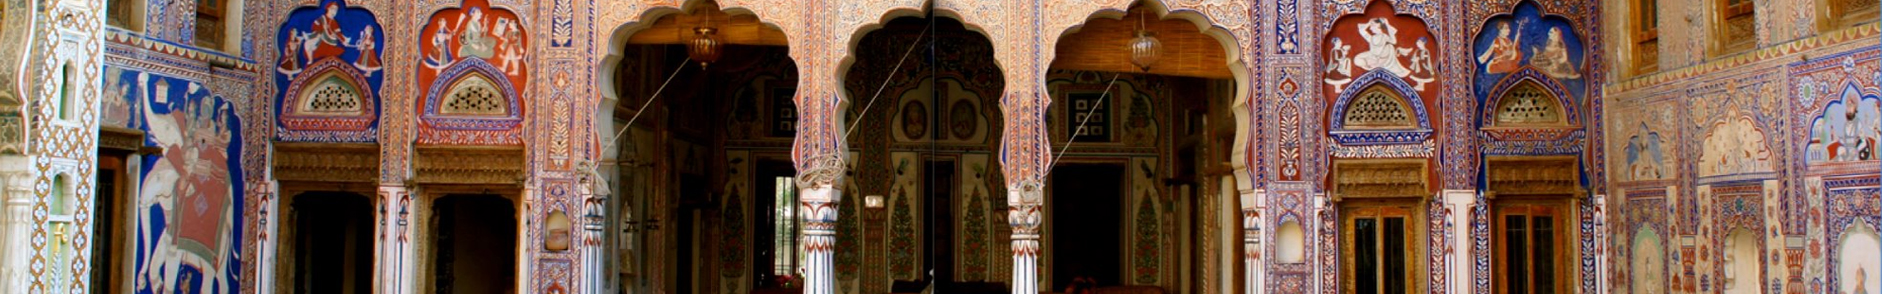 How to Reach Shekhawati